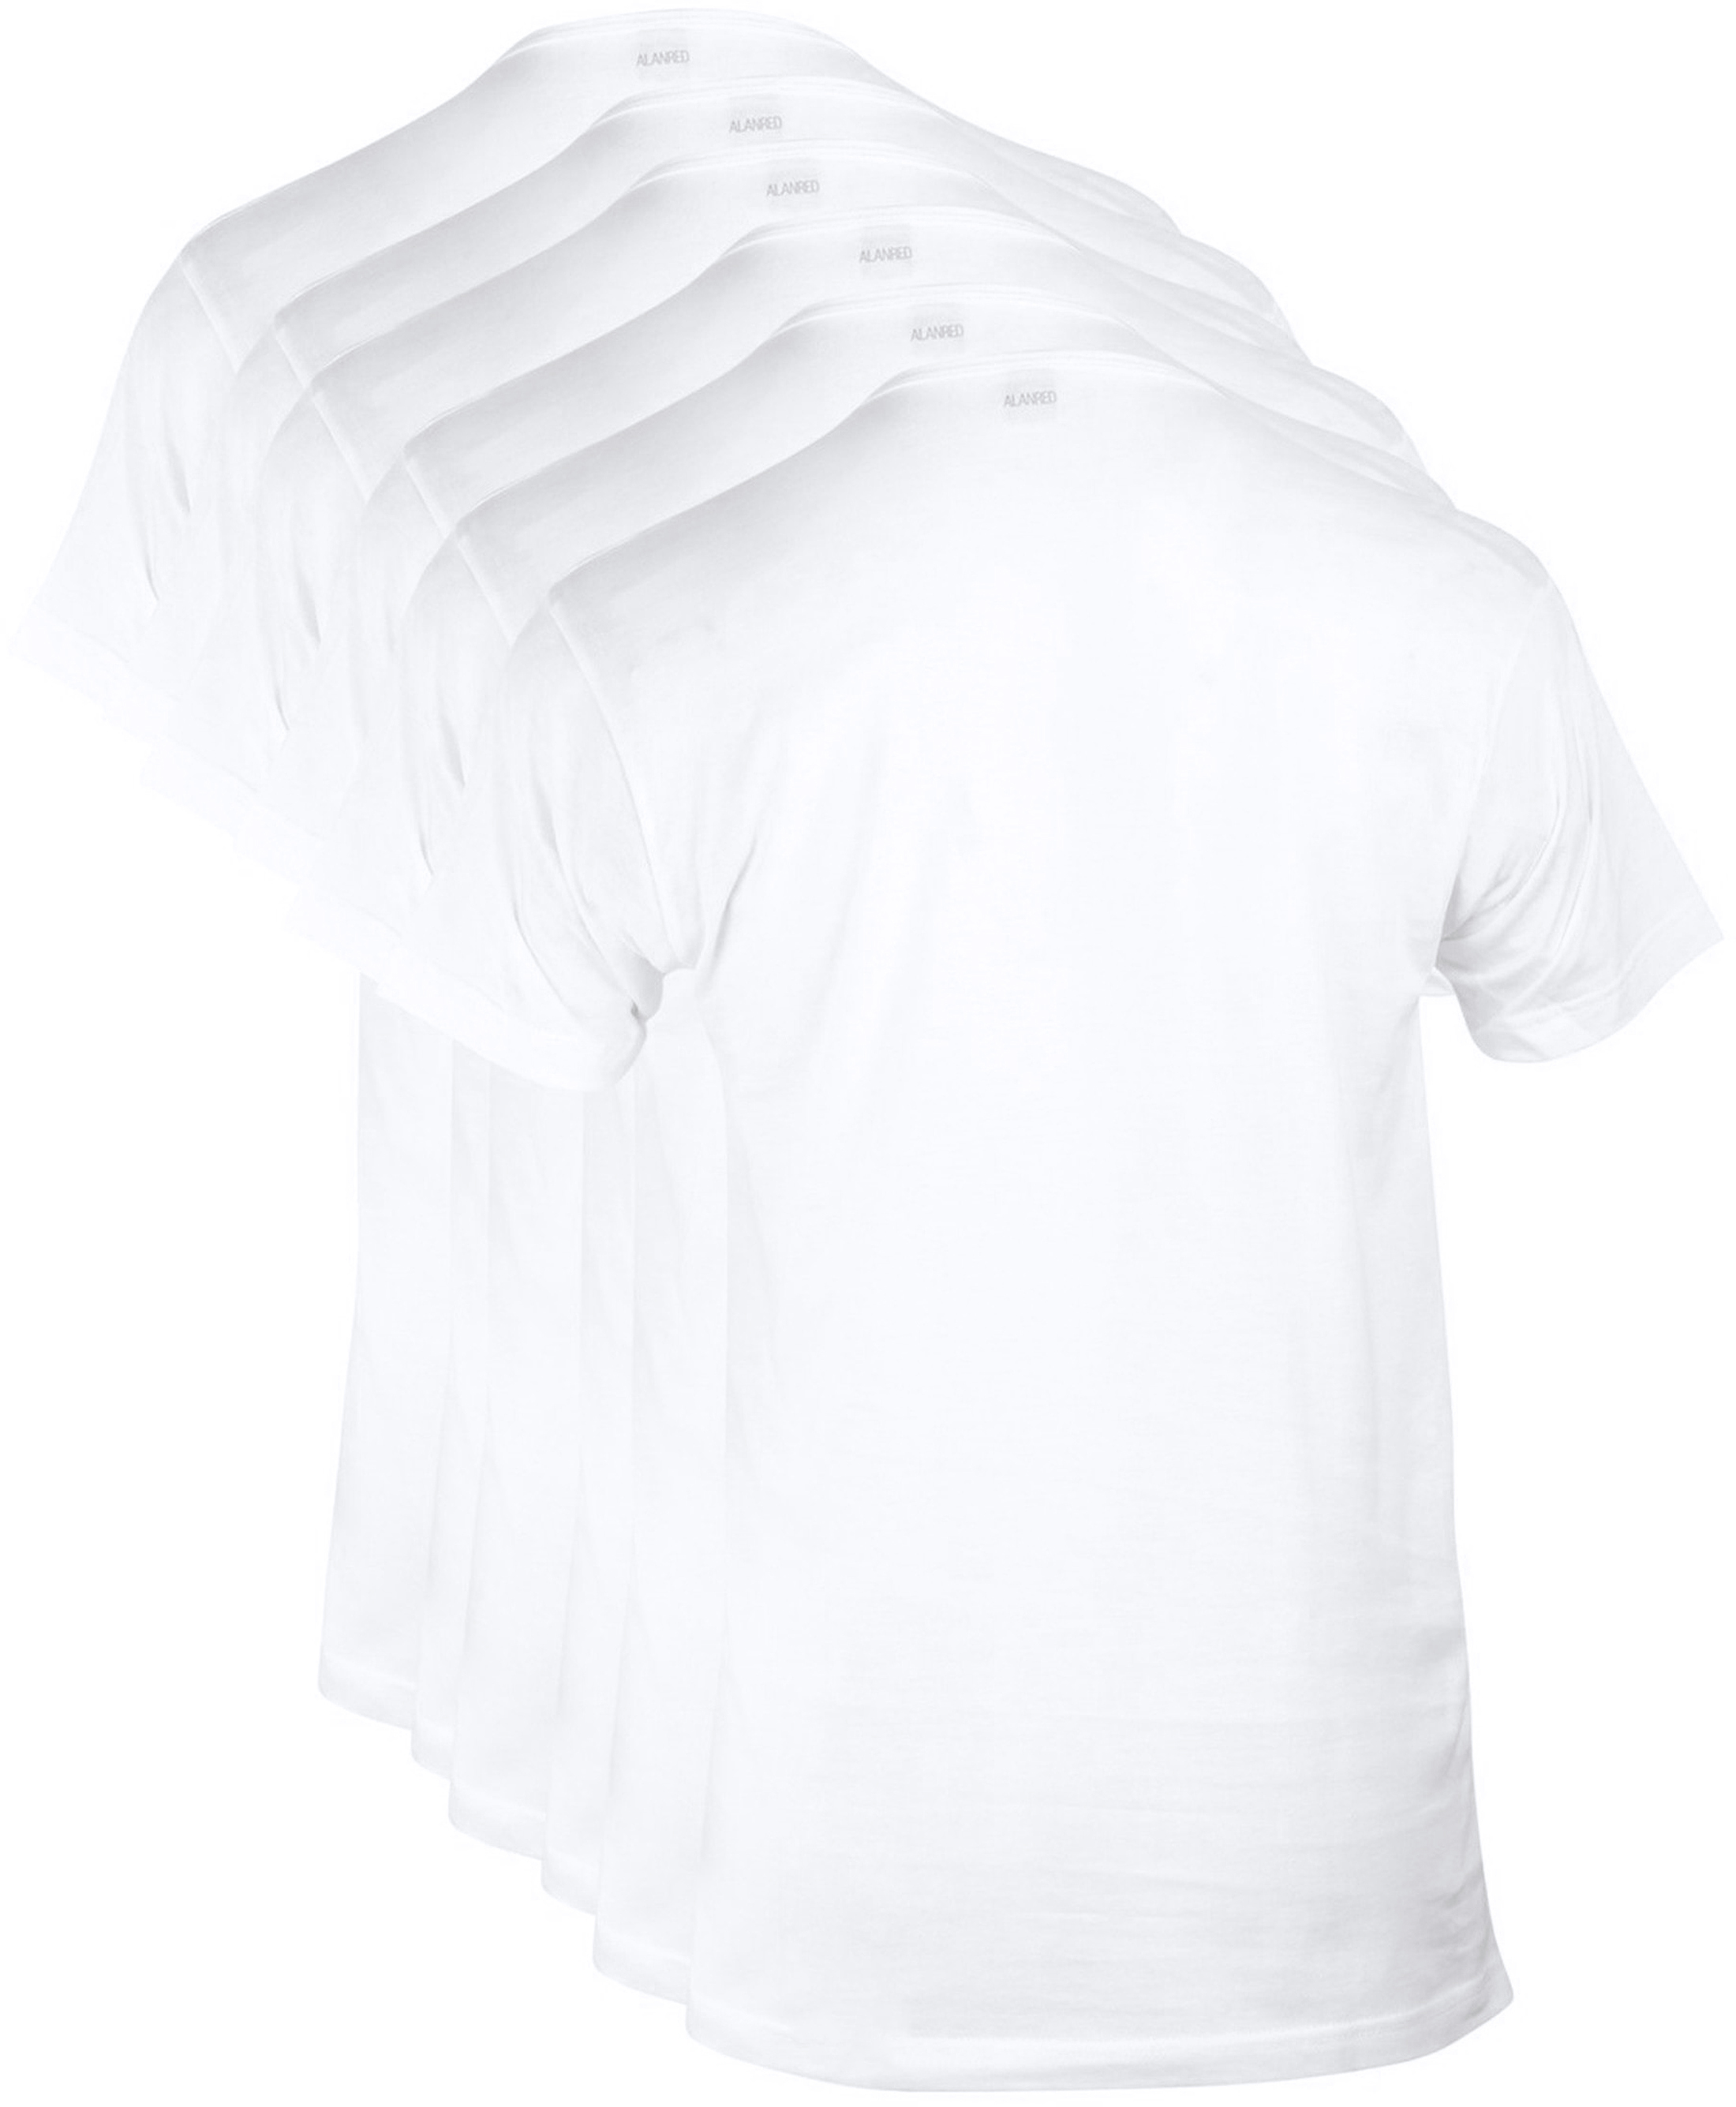 Alan Red Special Offer O-Neck T-shirts White 6-Pack foto 2